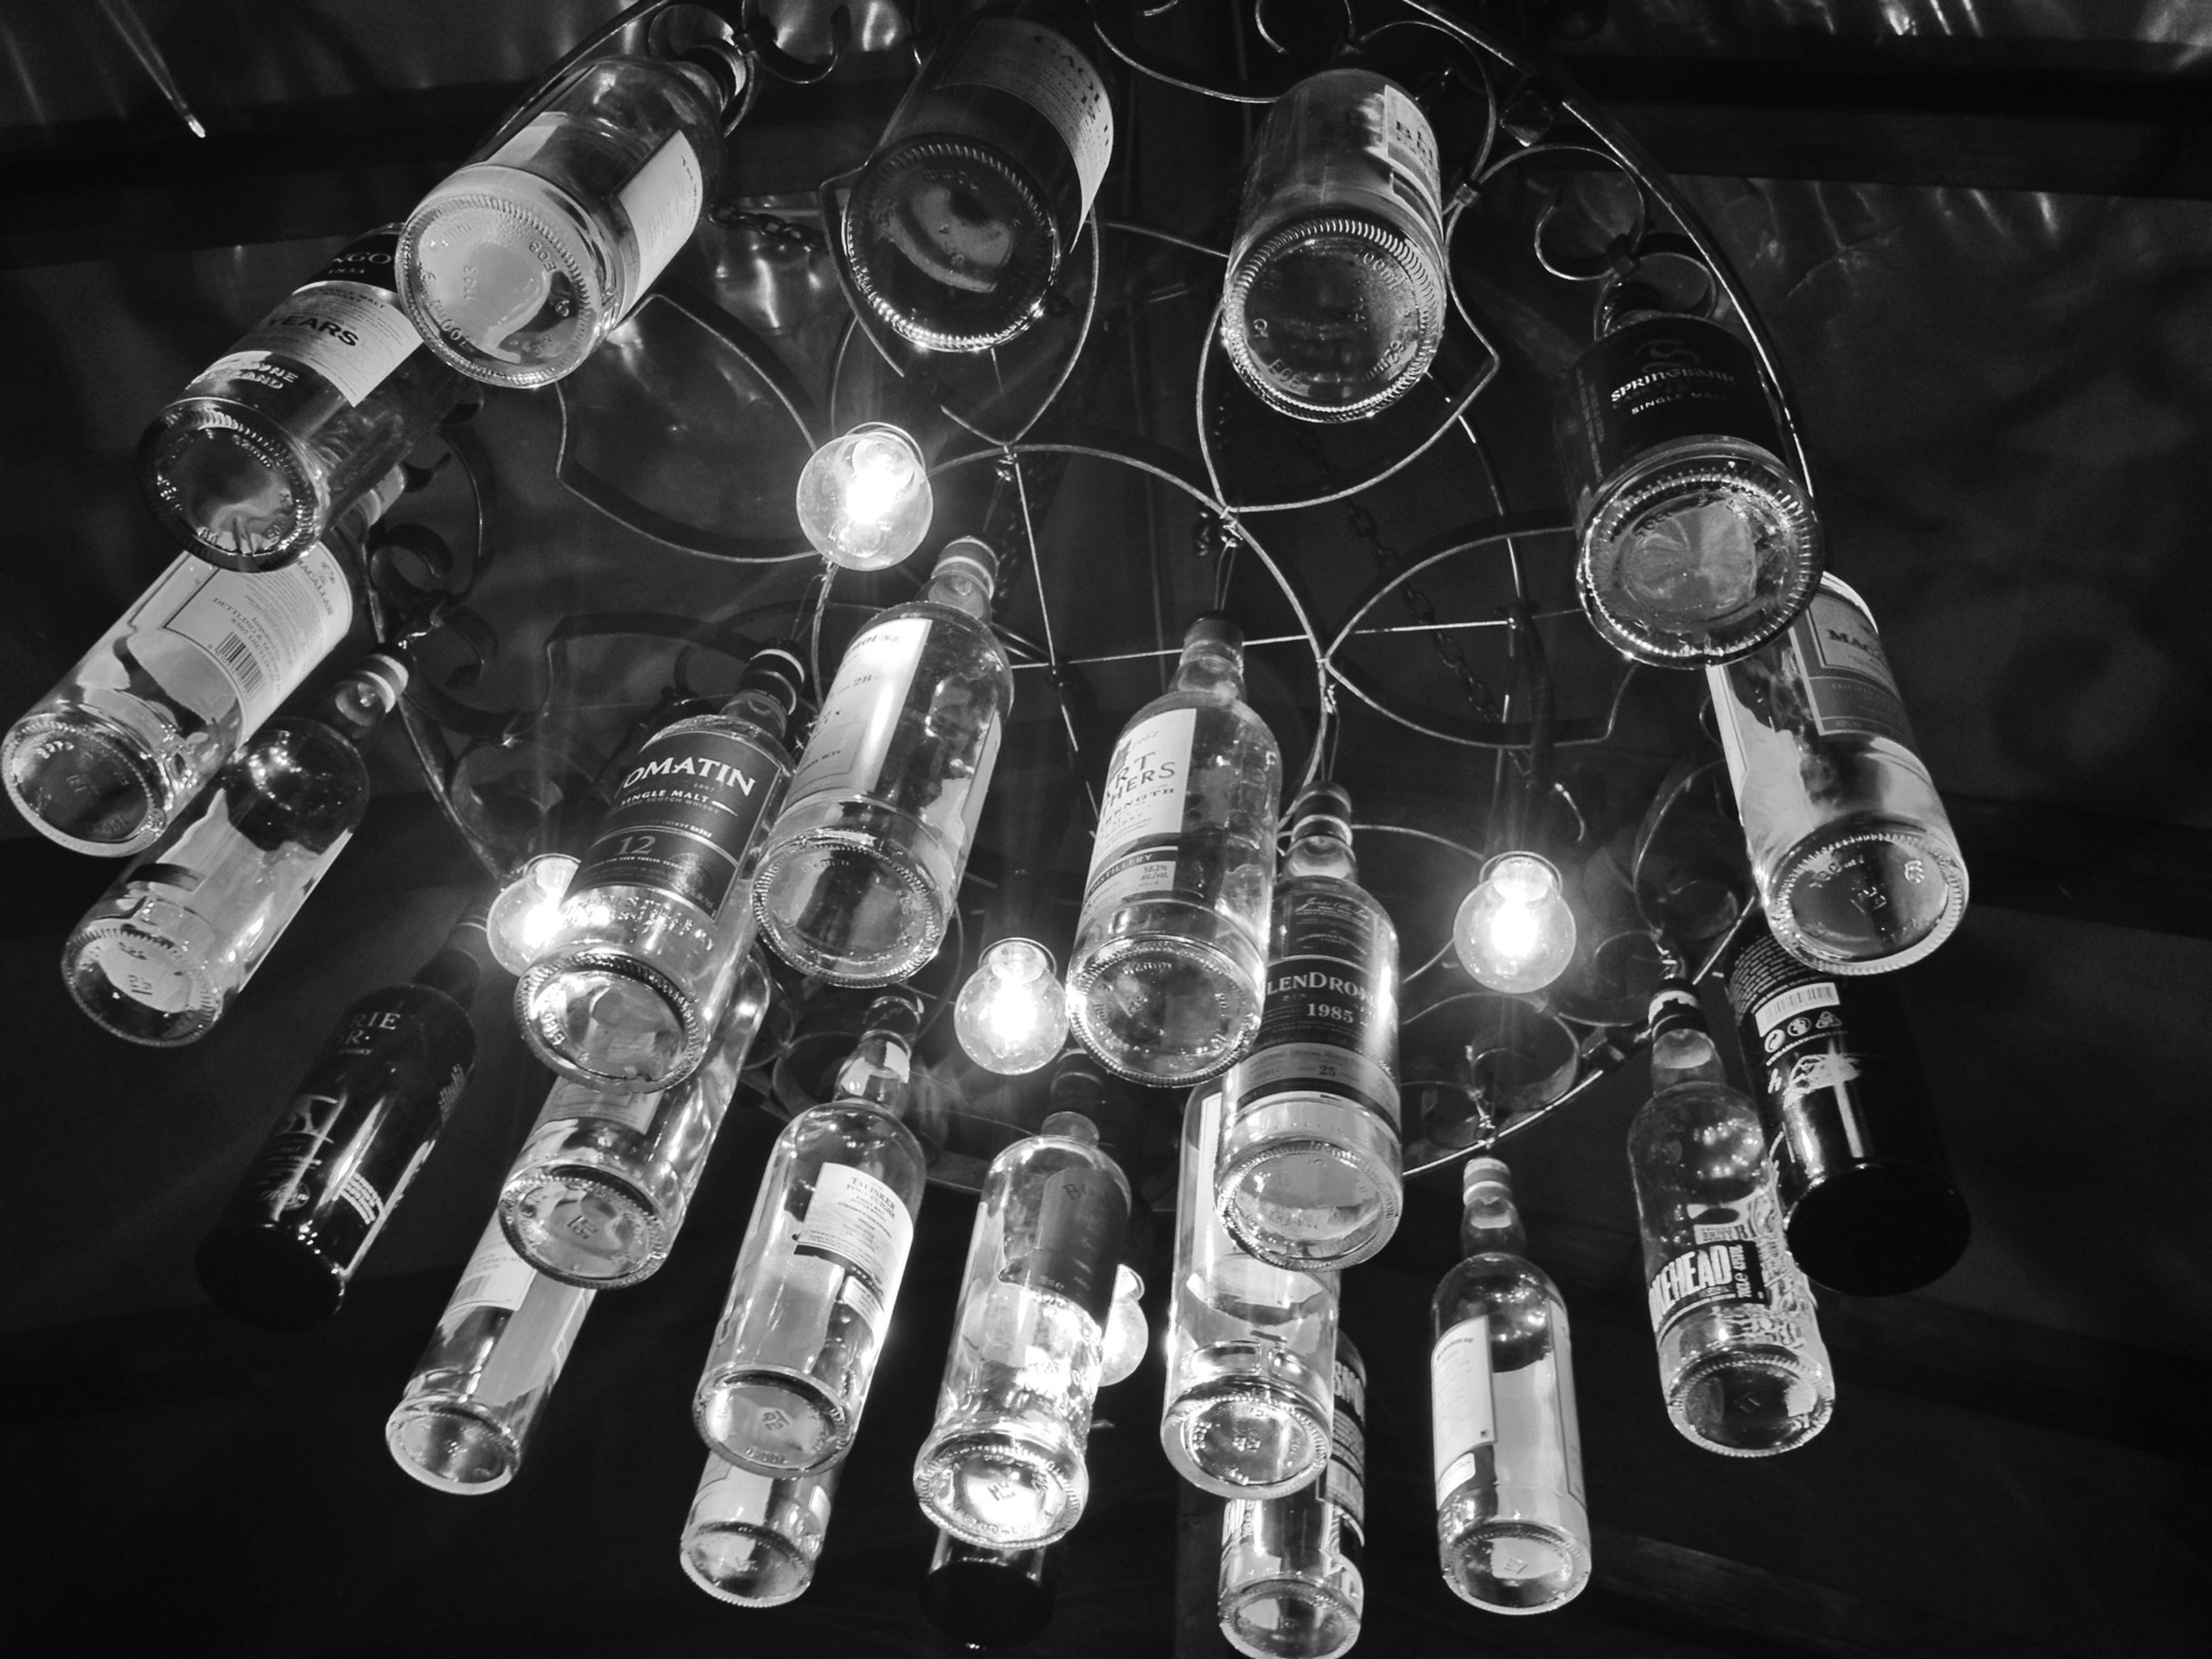 indoors, large group of objects, still life, variation, abundance, arrangement, close-up, illuminated, hanging, in a row, table, choice, electricity, technology, high angle view, lighting equipment, bottle, order, metal, no people